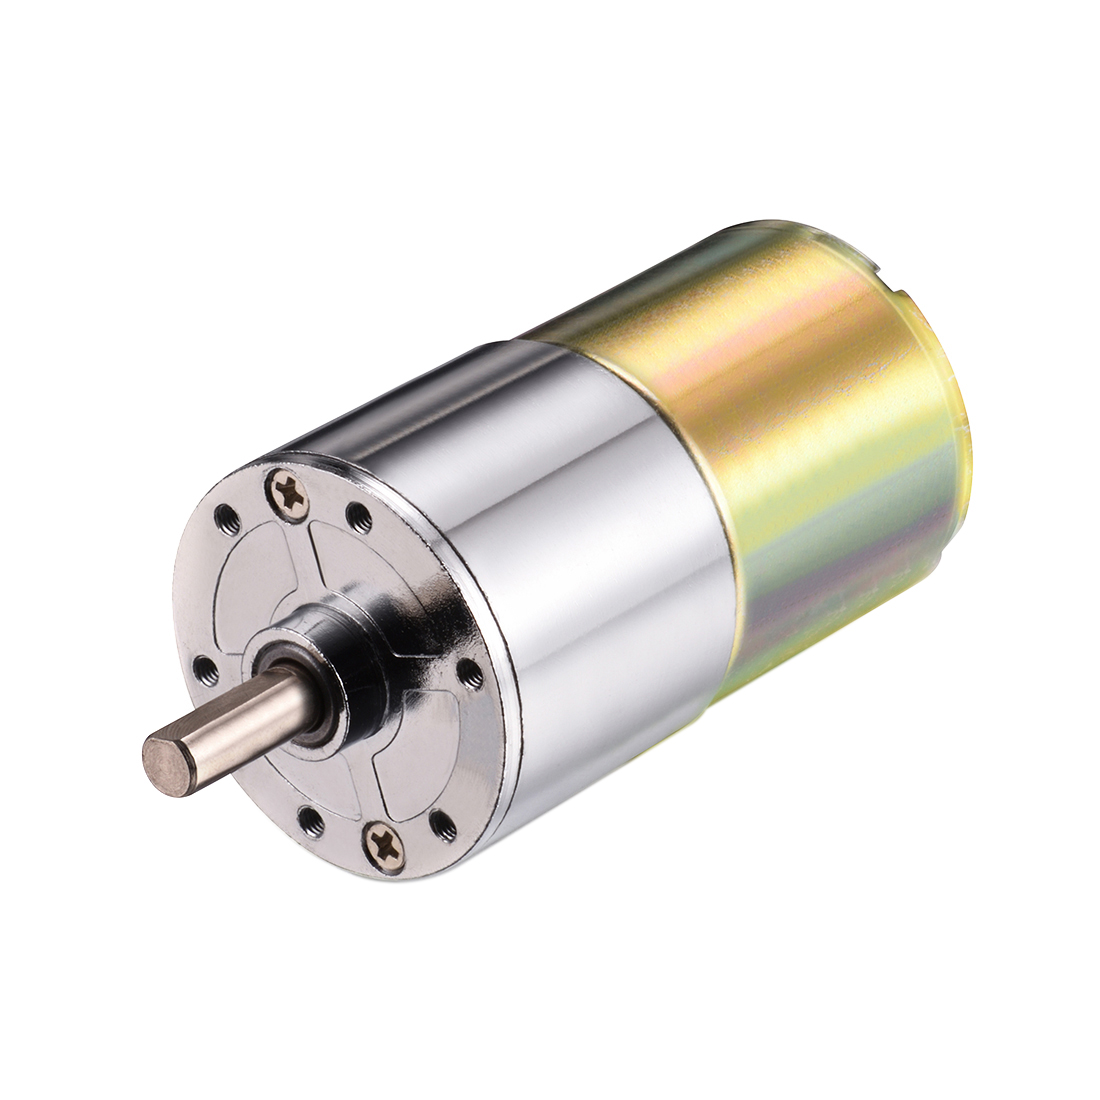 DC 24V 200RPM Micro Gear Box Motor Speed Reduction Electric Gearbox Centric Output Shaft